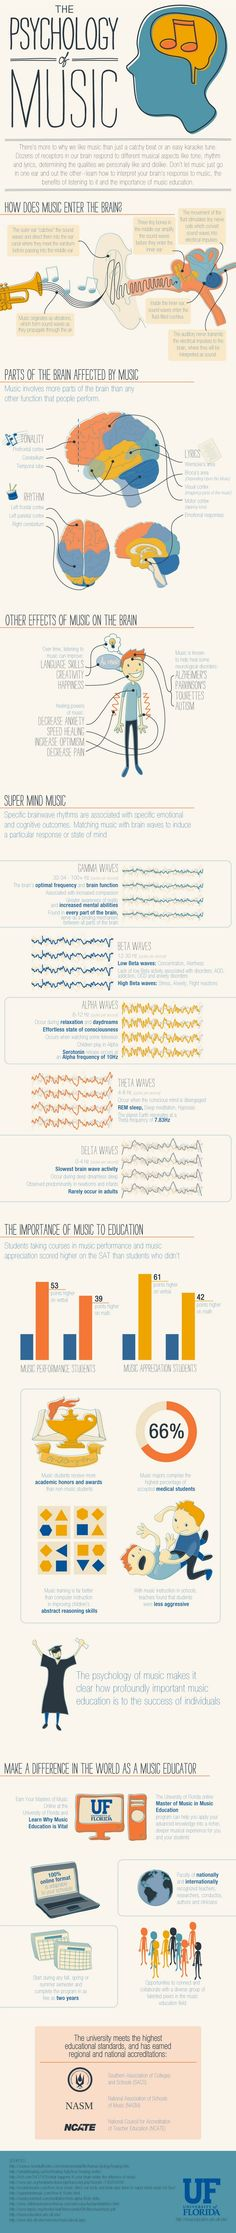 Psychology_of_Music-infographic